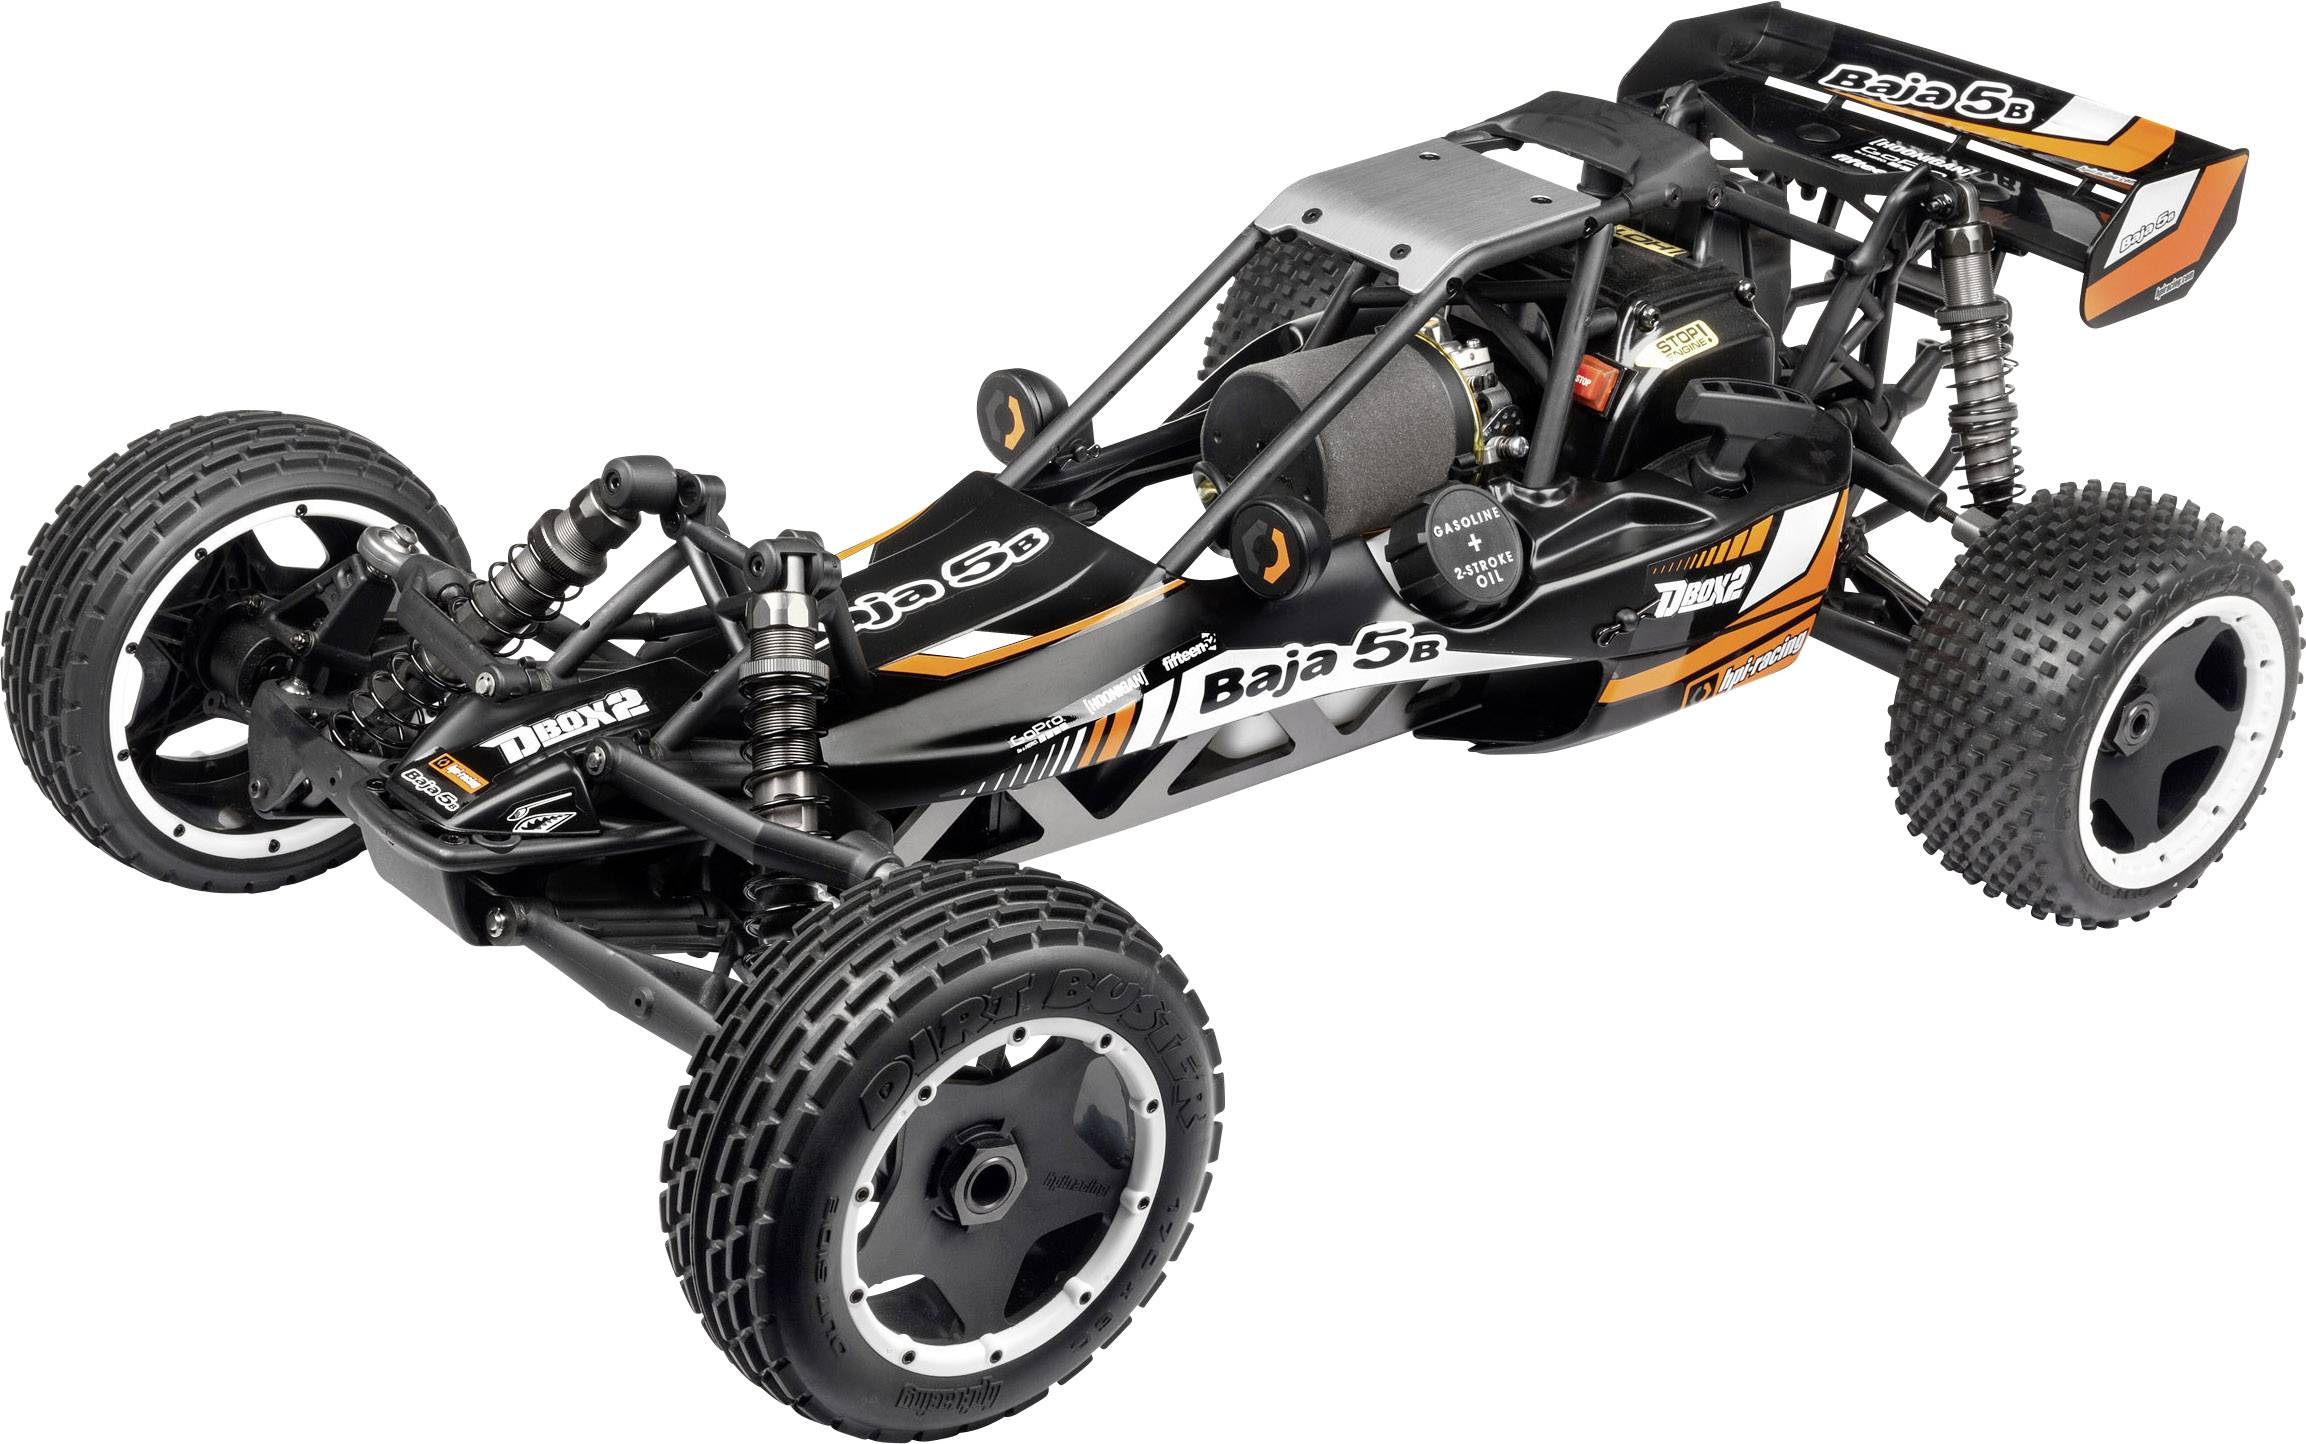 hpi racing baja 5b 1 5 rc auto benzine buggy. Black Bedroom Furniture Sets. Home Design Ideas